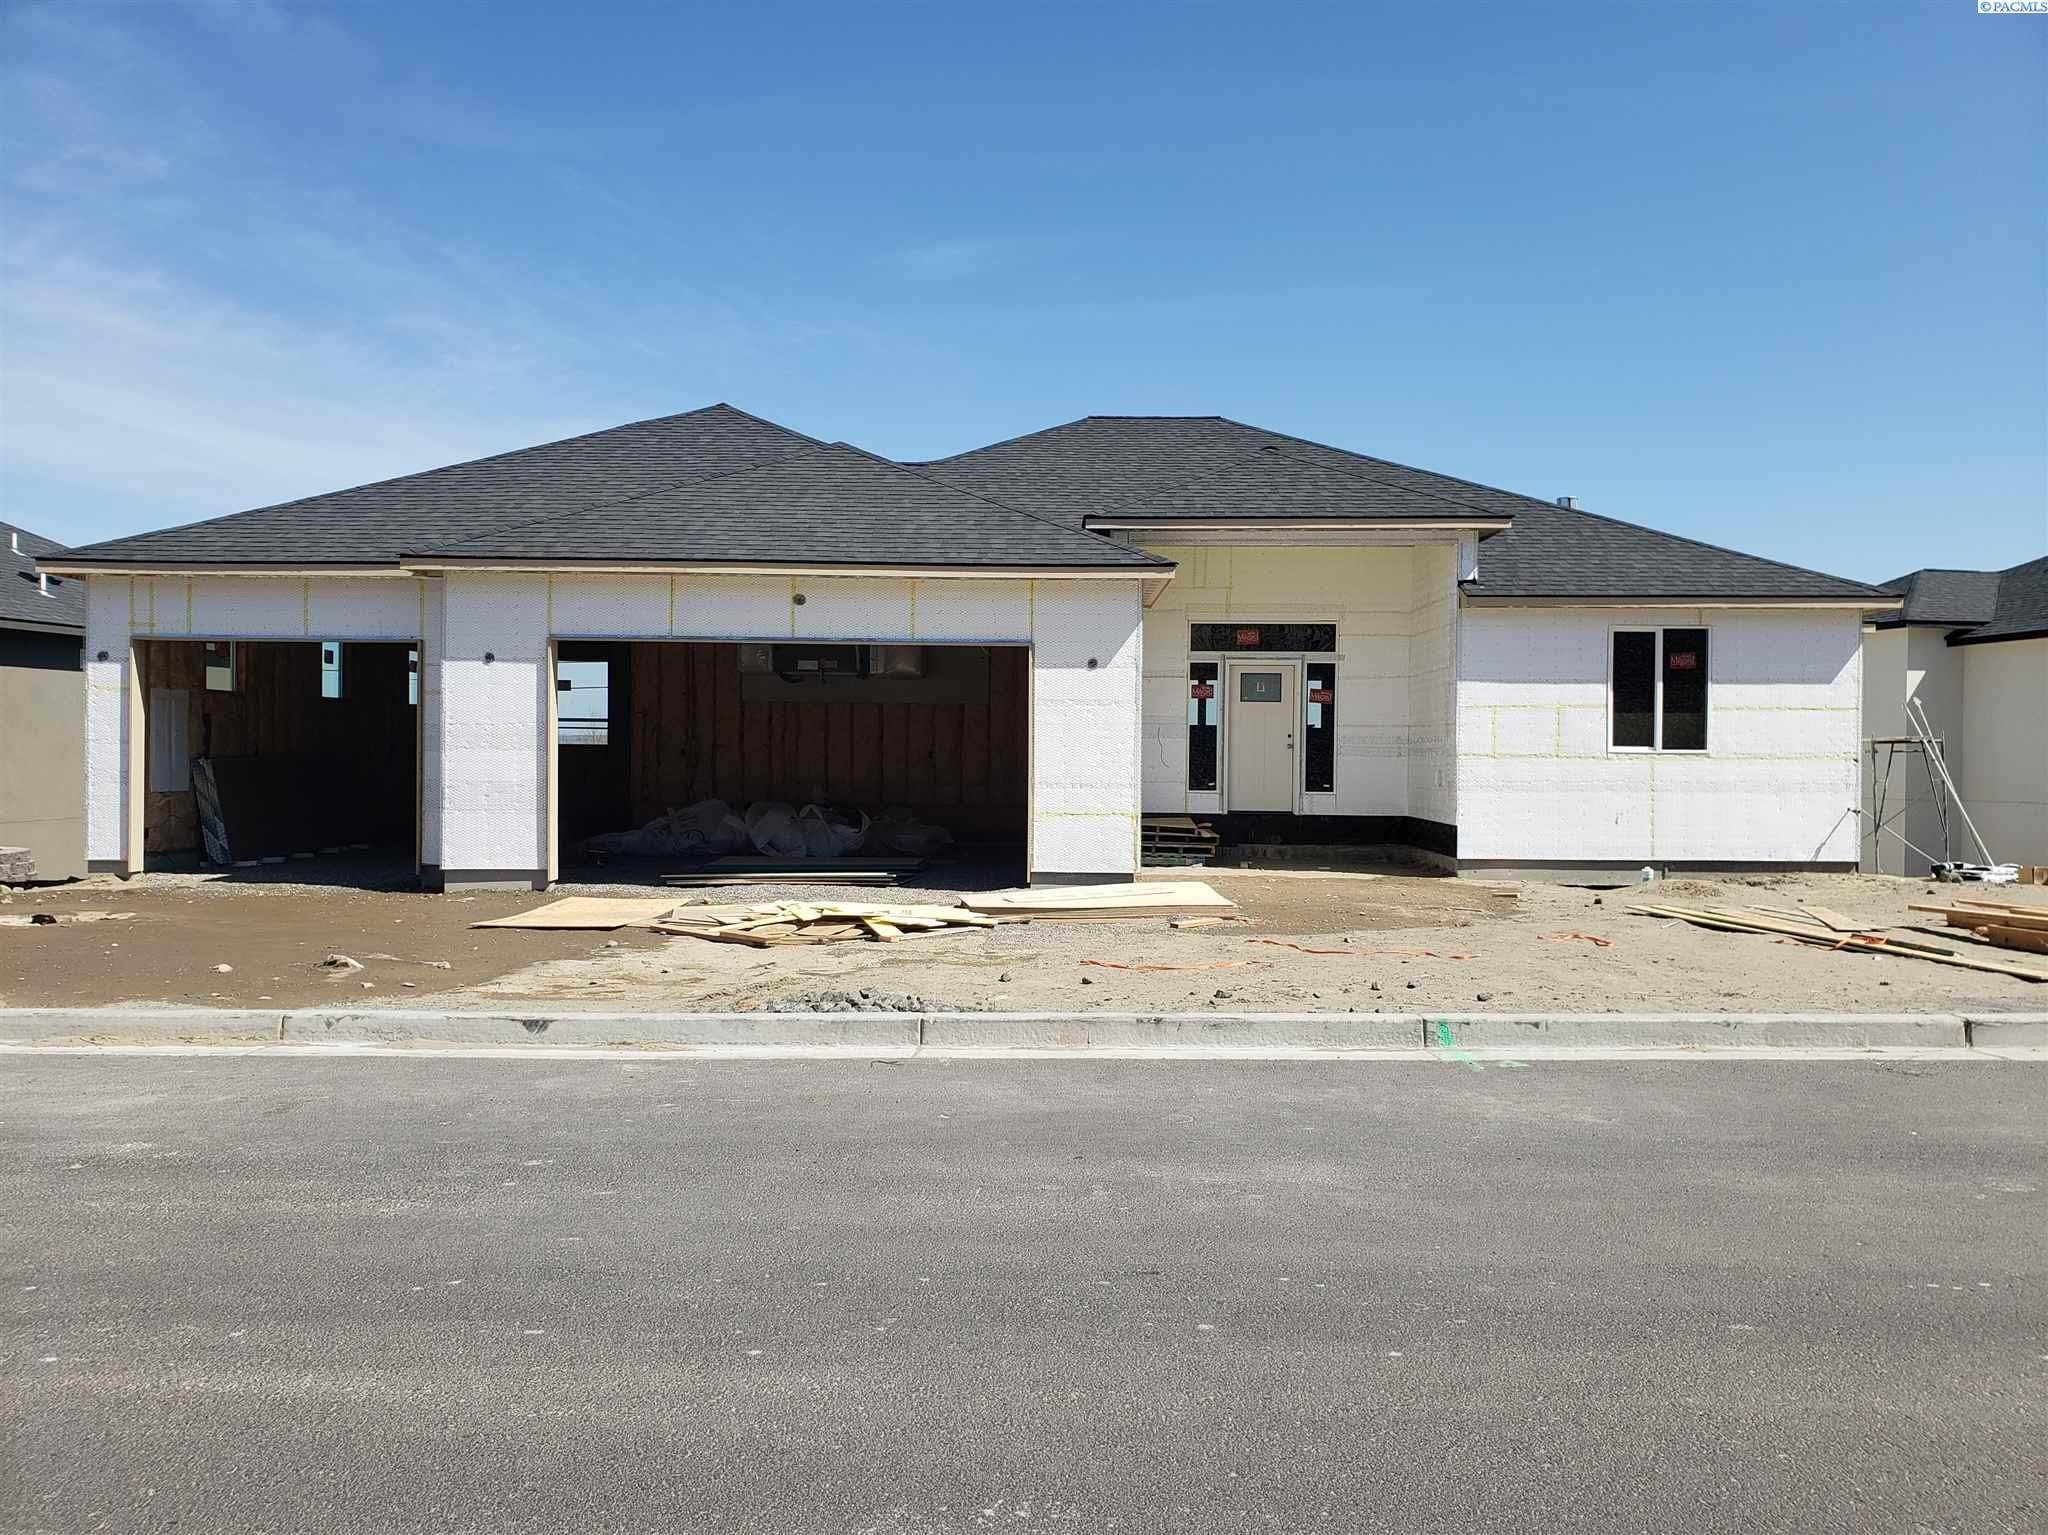 Single Family Homes for Sale at 3392 Bing Street West Richland, Washington 99353 United States